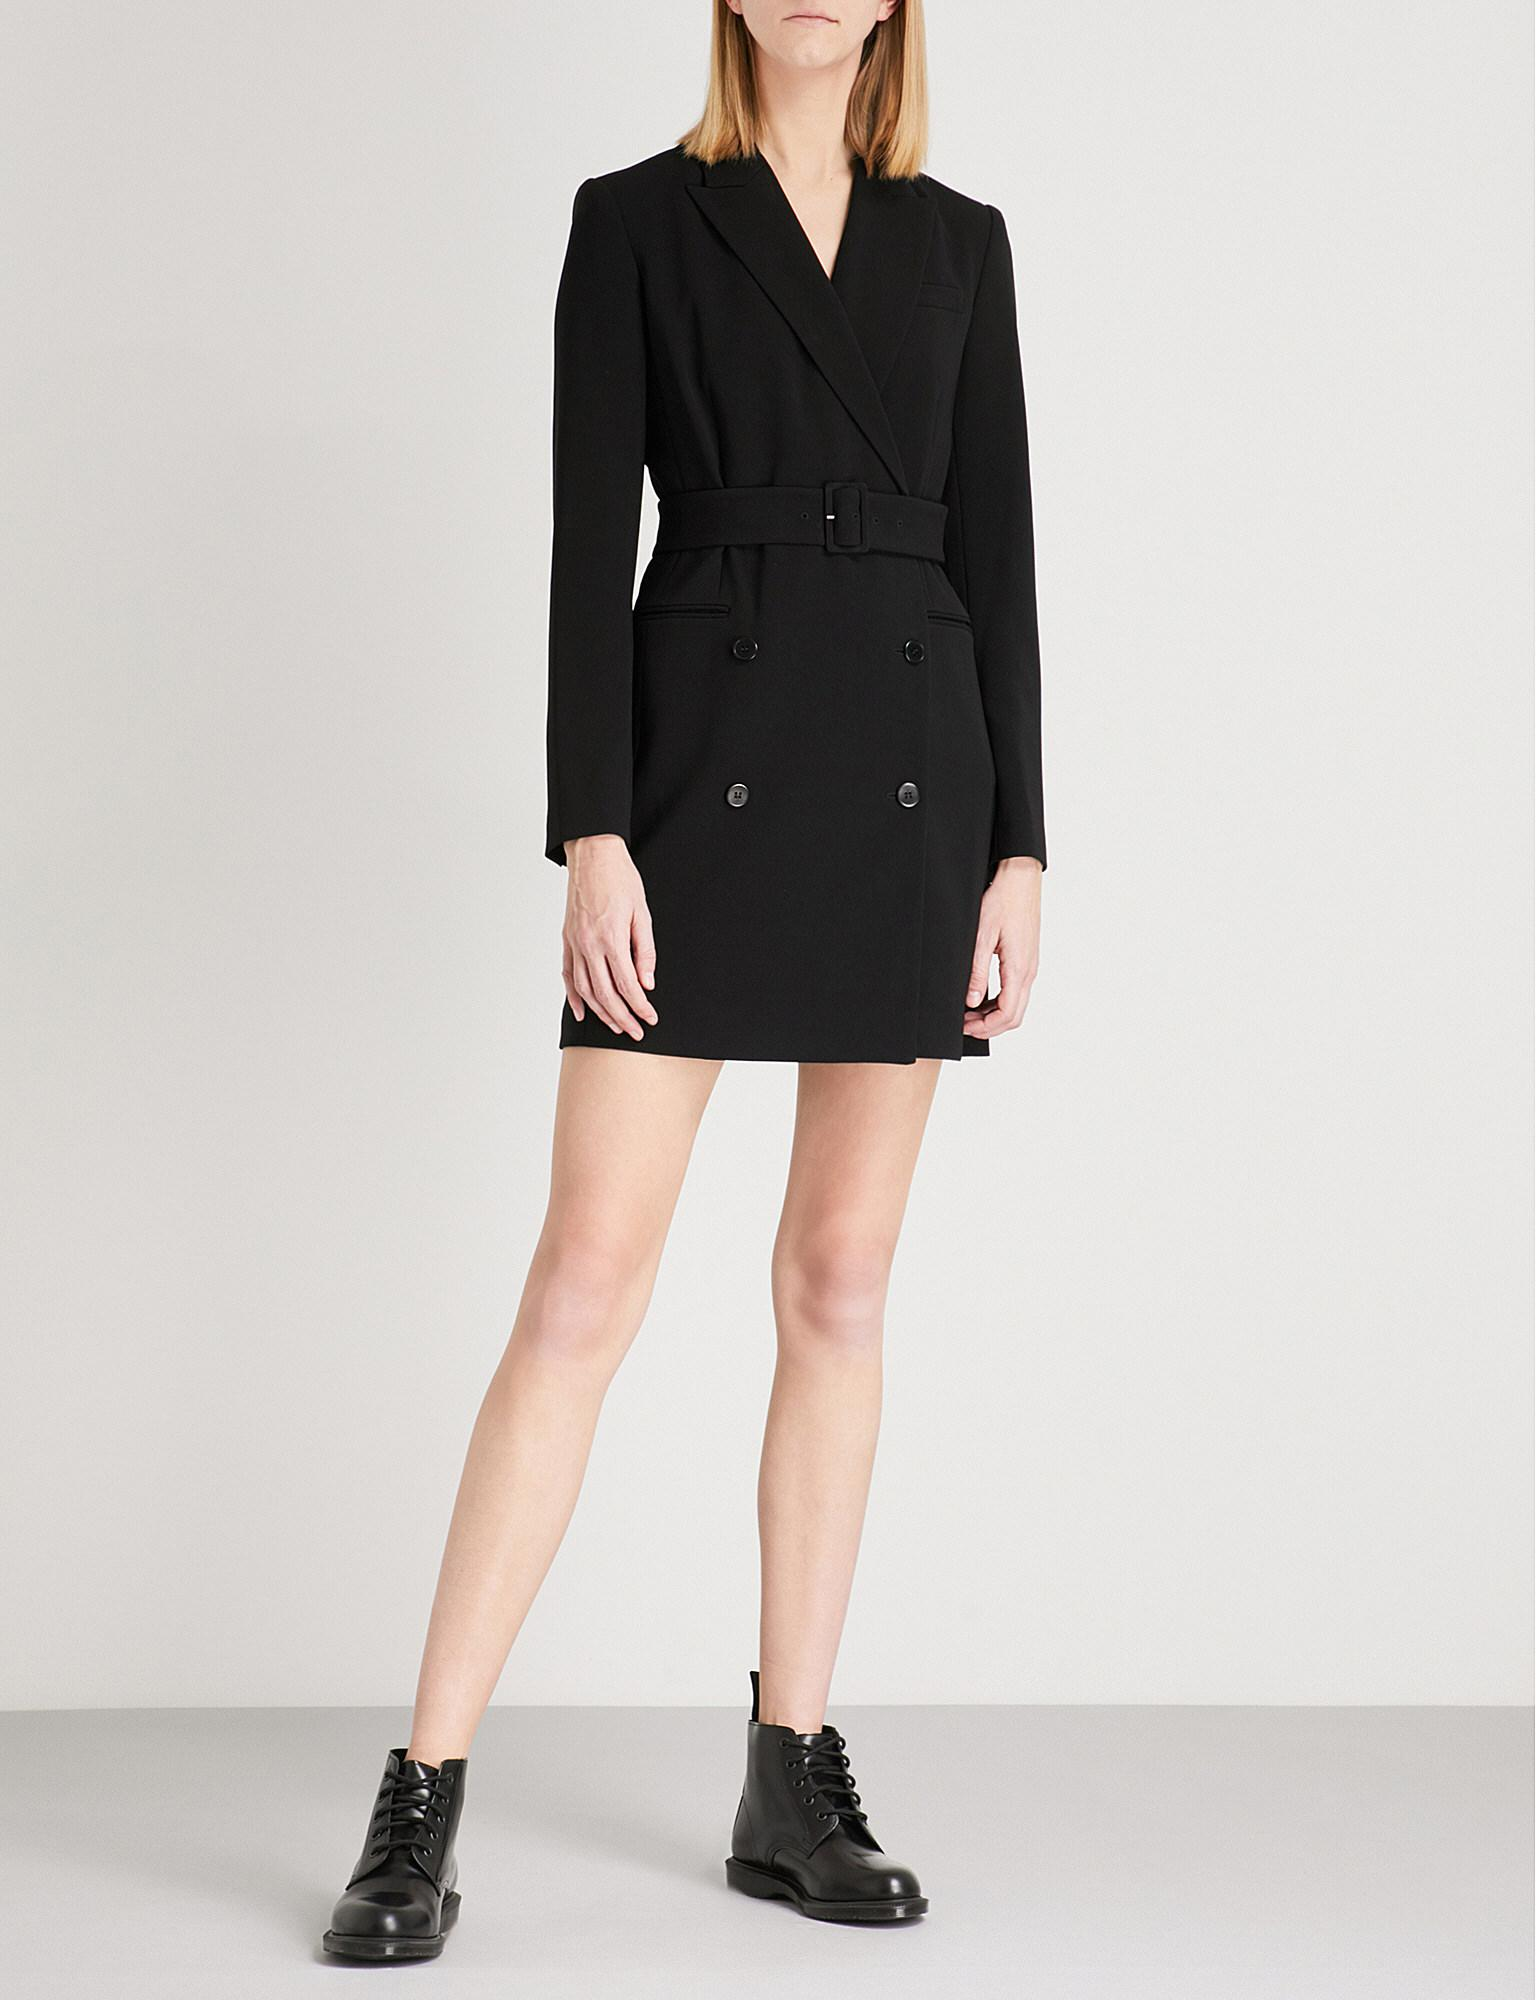 72b6f072b6 Theory Double-breasted Crepe Blazer Dress in Black - Lyst